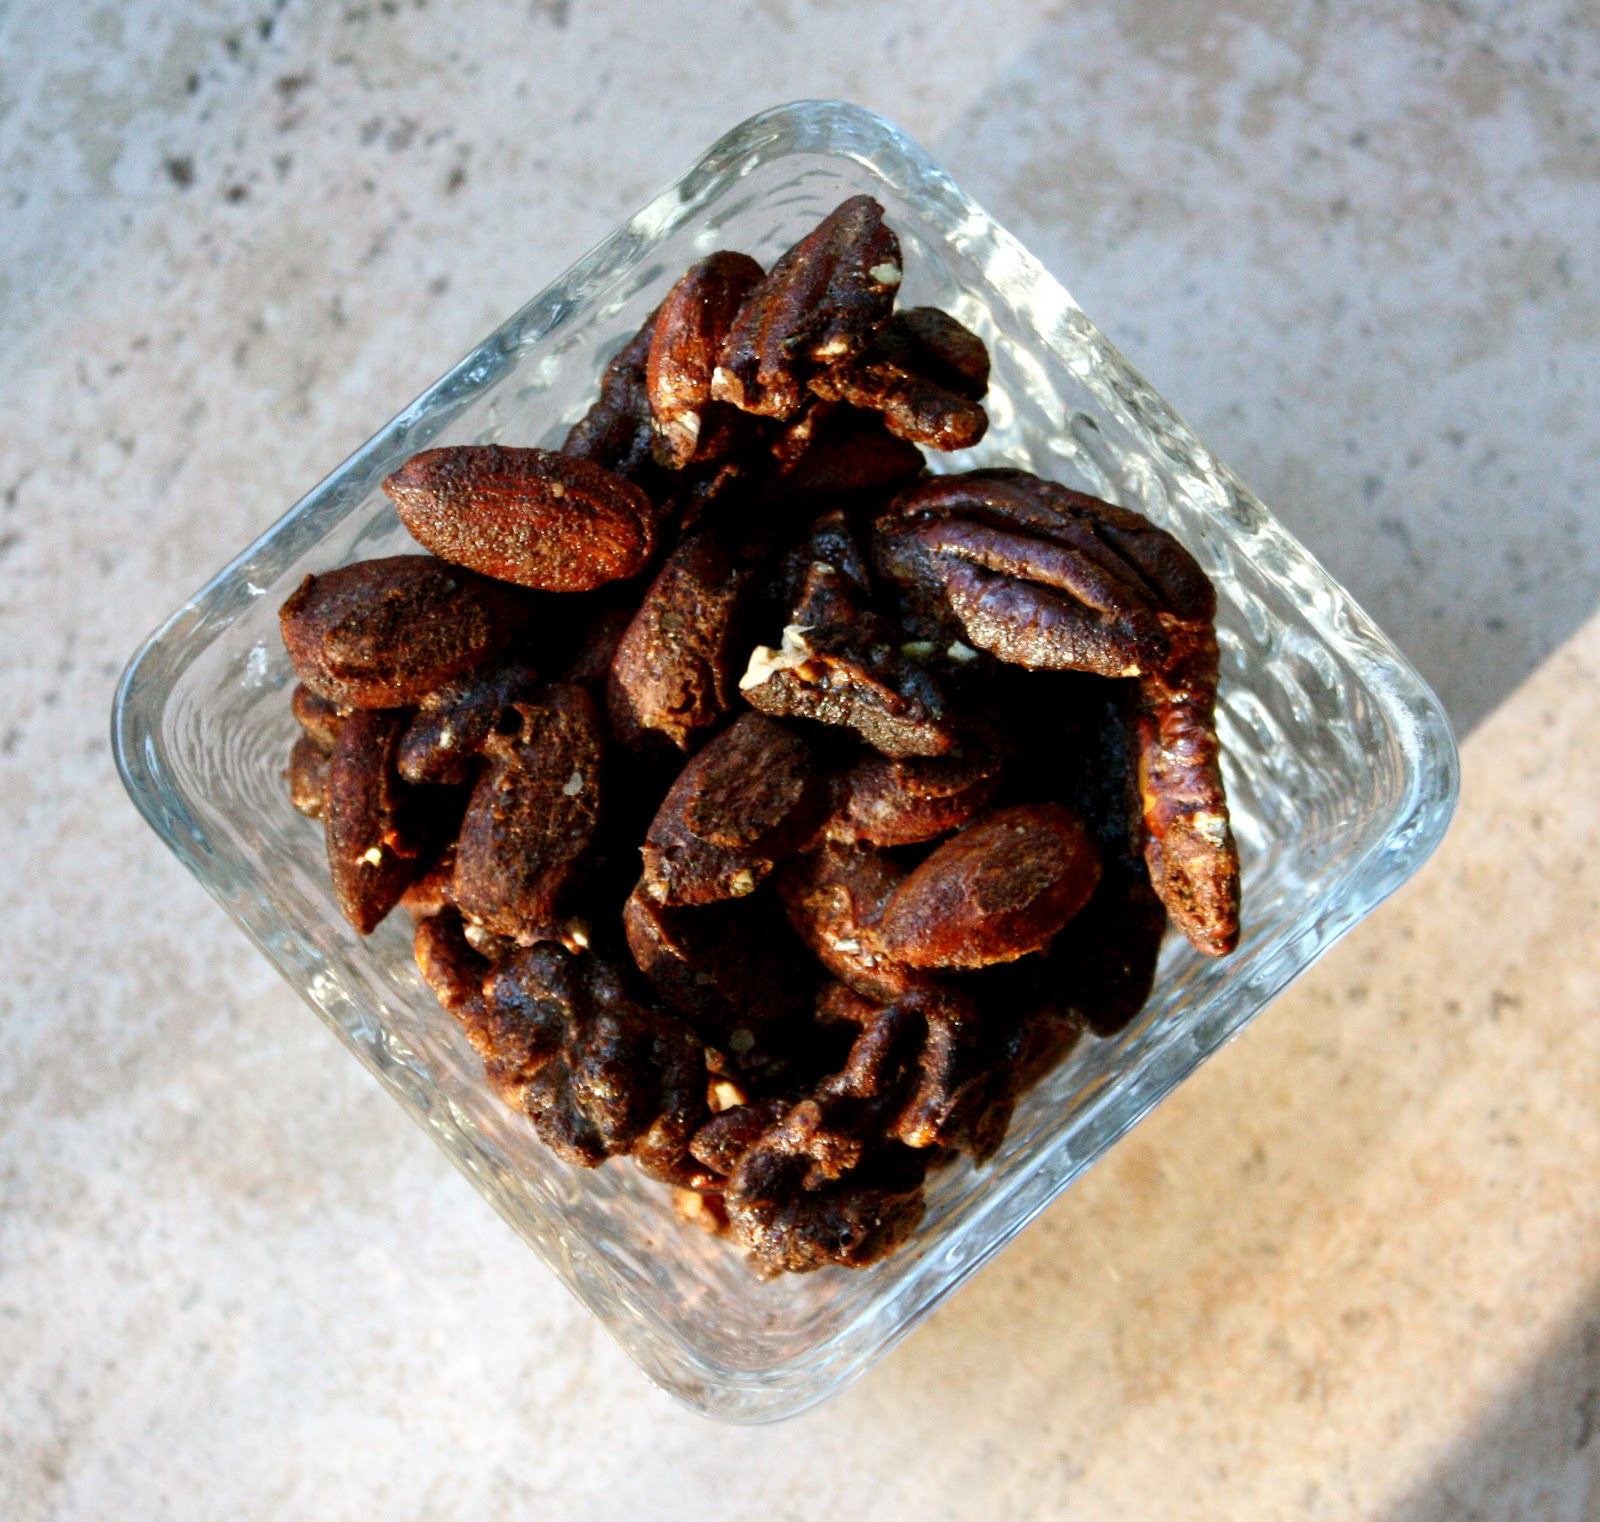 fabulous nuts Kind fruit and but bars in yogurt offer a crunchy, classic blend of heart healthy  nuts, dried apricots, and raisins drizzled with yogurt try one today.